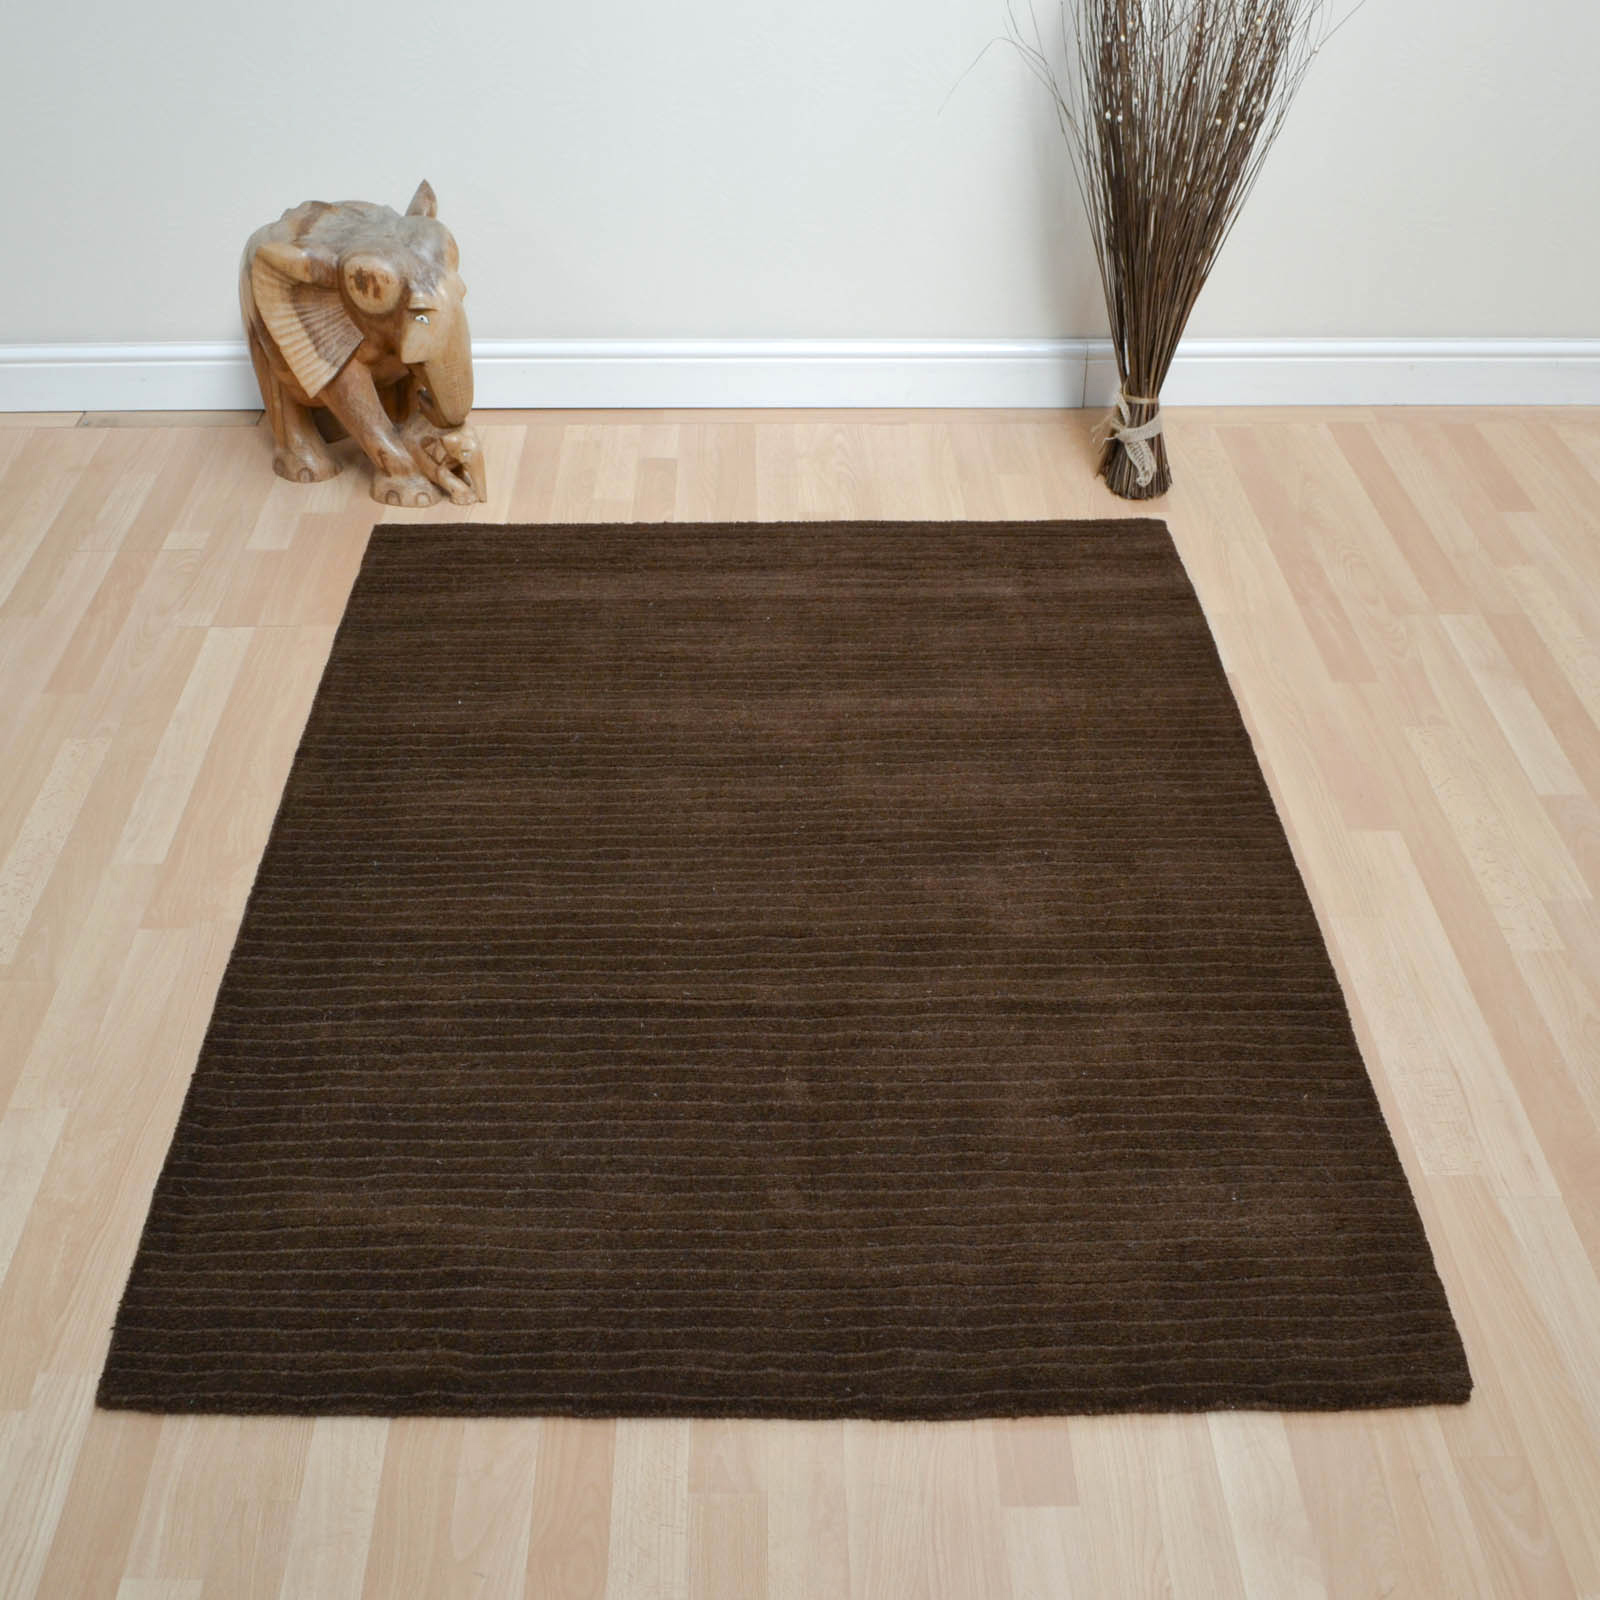 Pinstripe Rugs DT01 in Chocolate